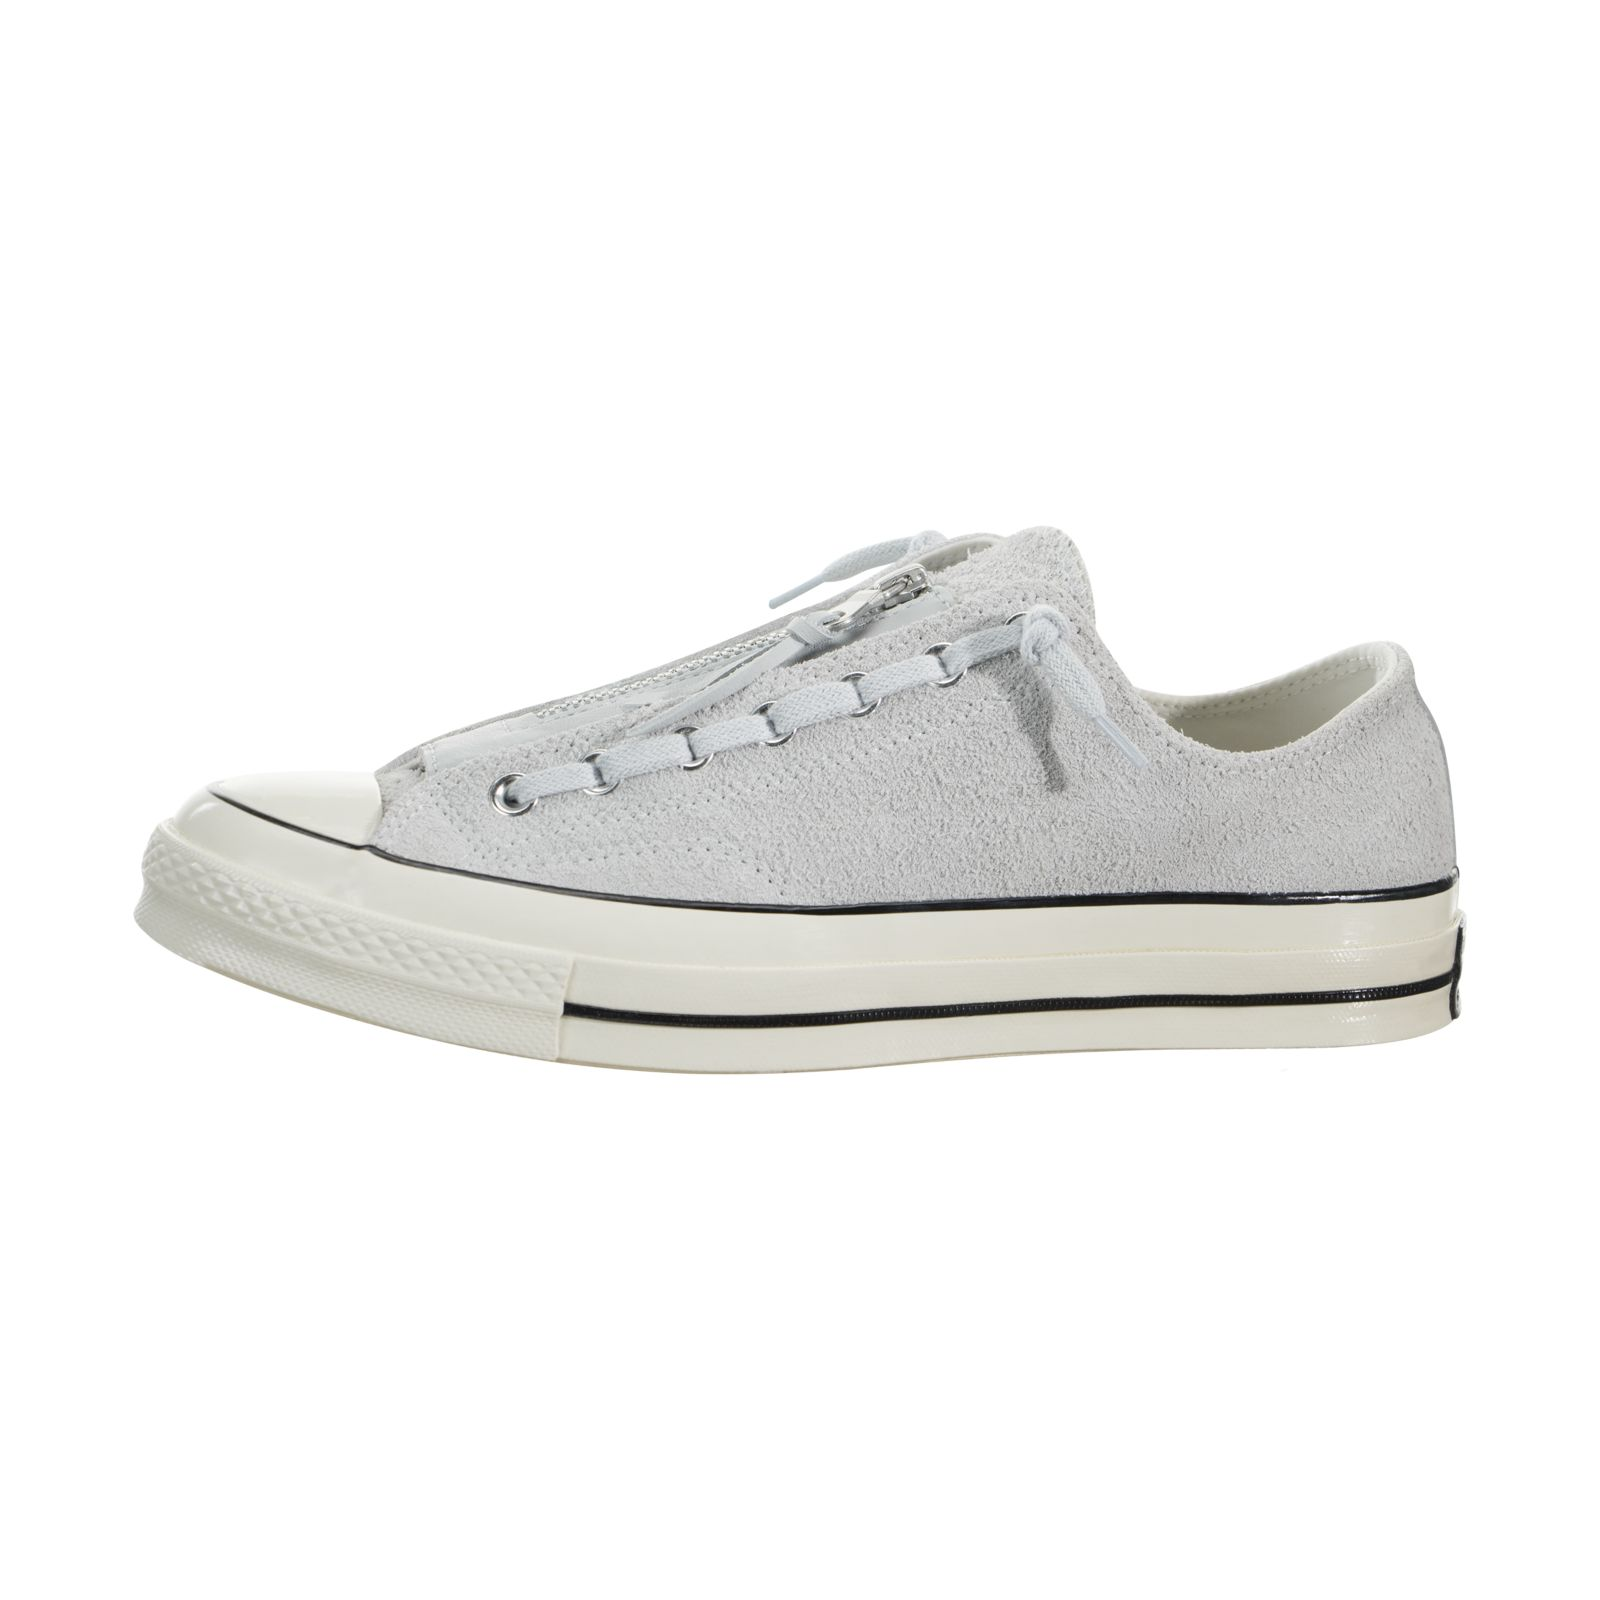 30d5e3dccab458 Image is loading Converse-Chuck-Taylor-All-Star-70-Zip-Low-